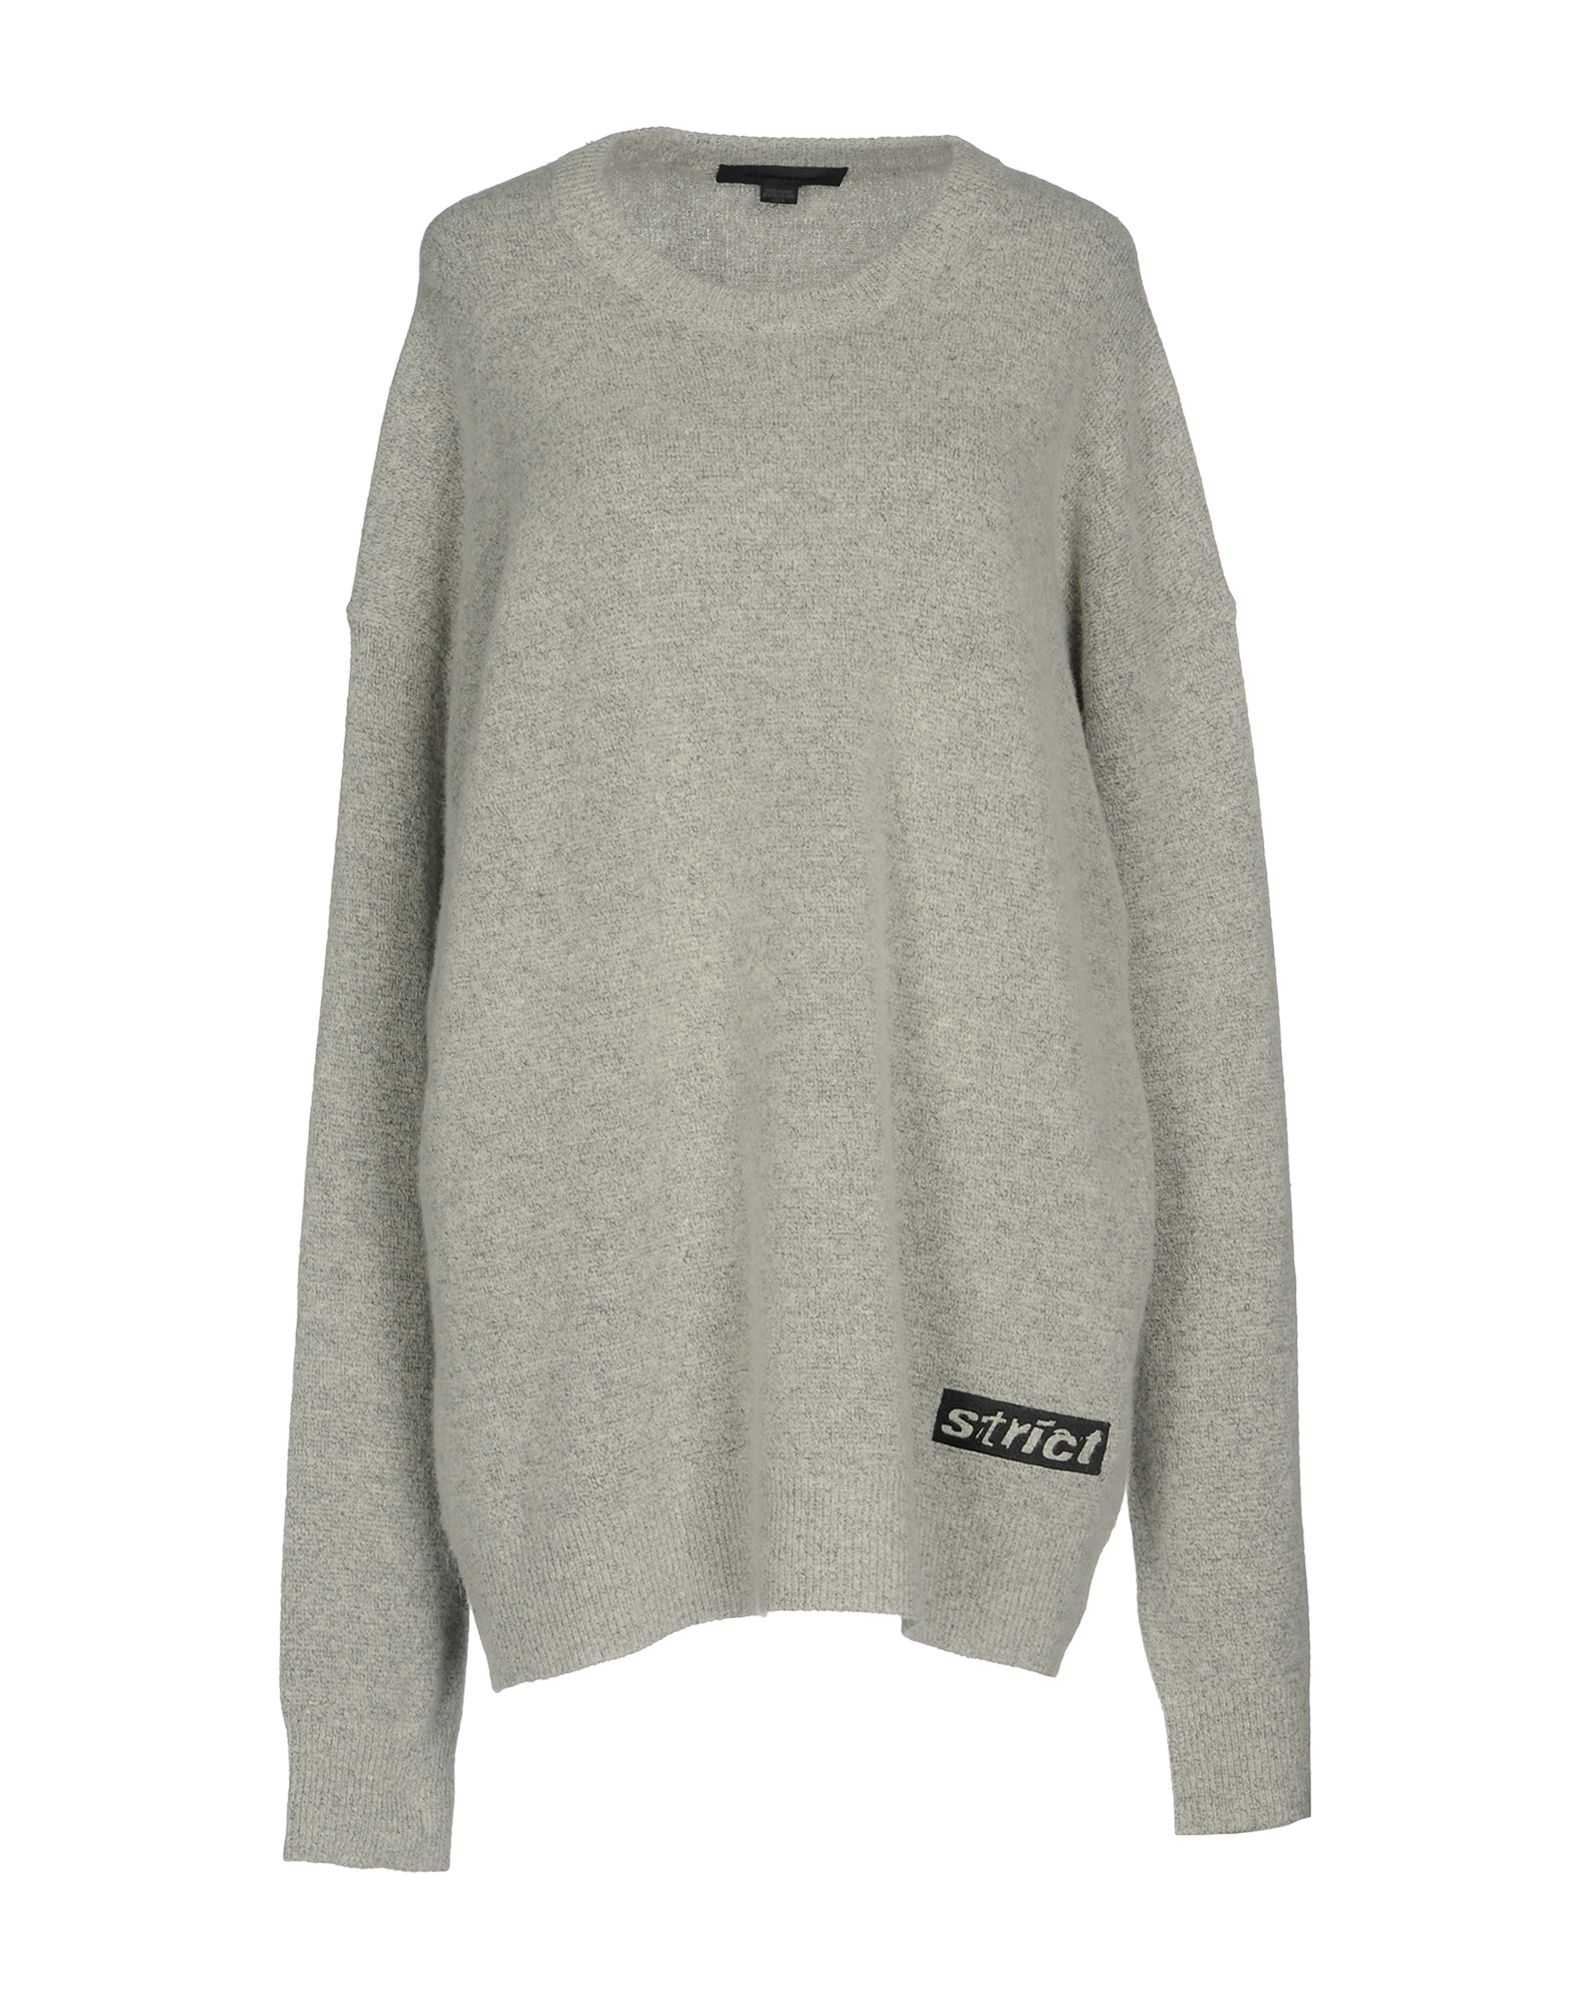 ALEXANDER WANG Sweaters - Item 39809190